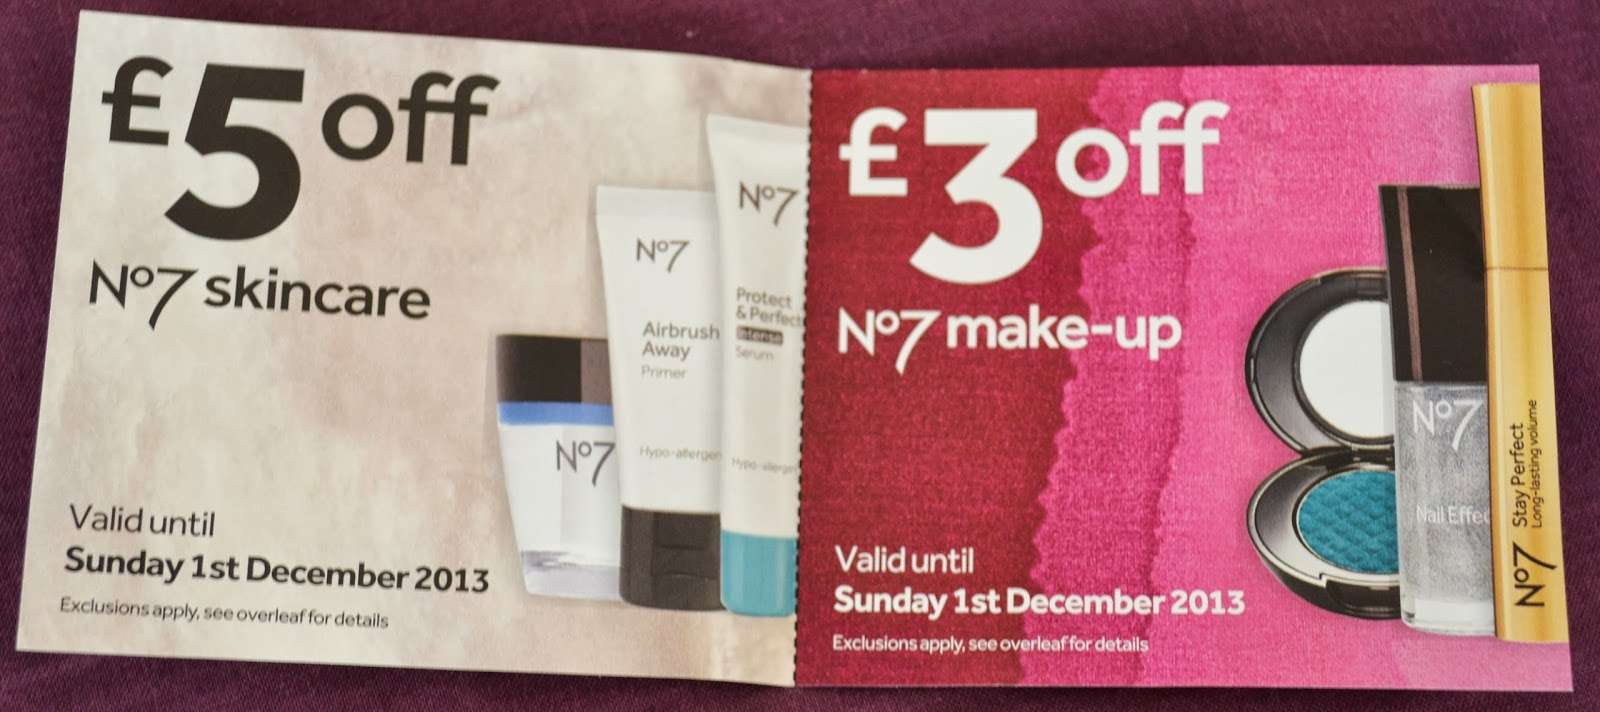 Shop 3 For 2 Christmas Gifts At Boots!